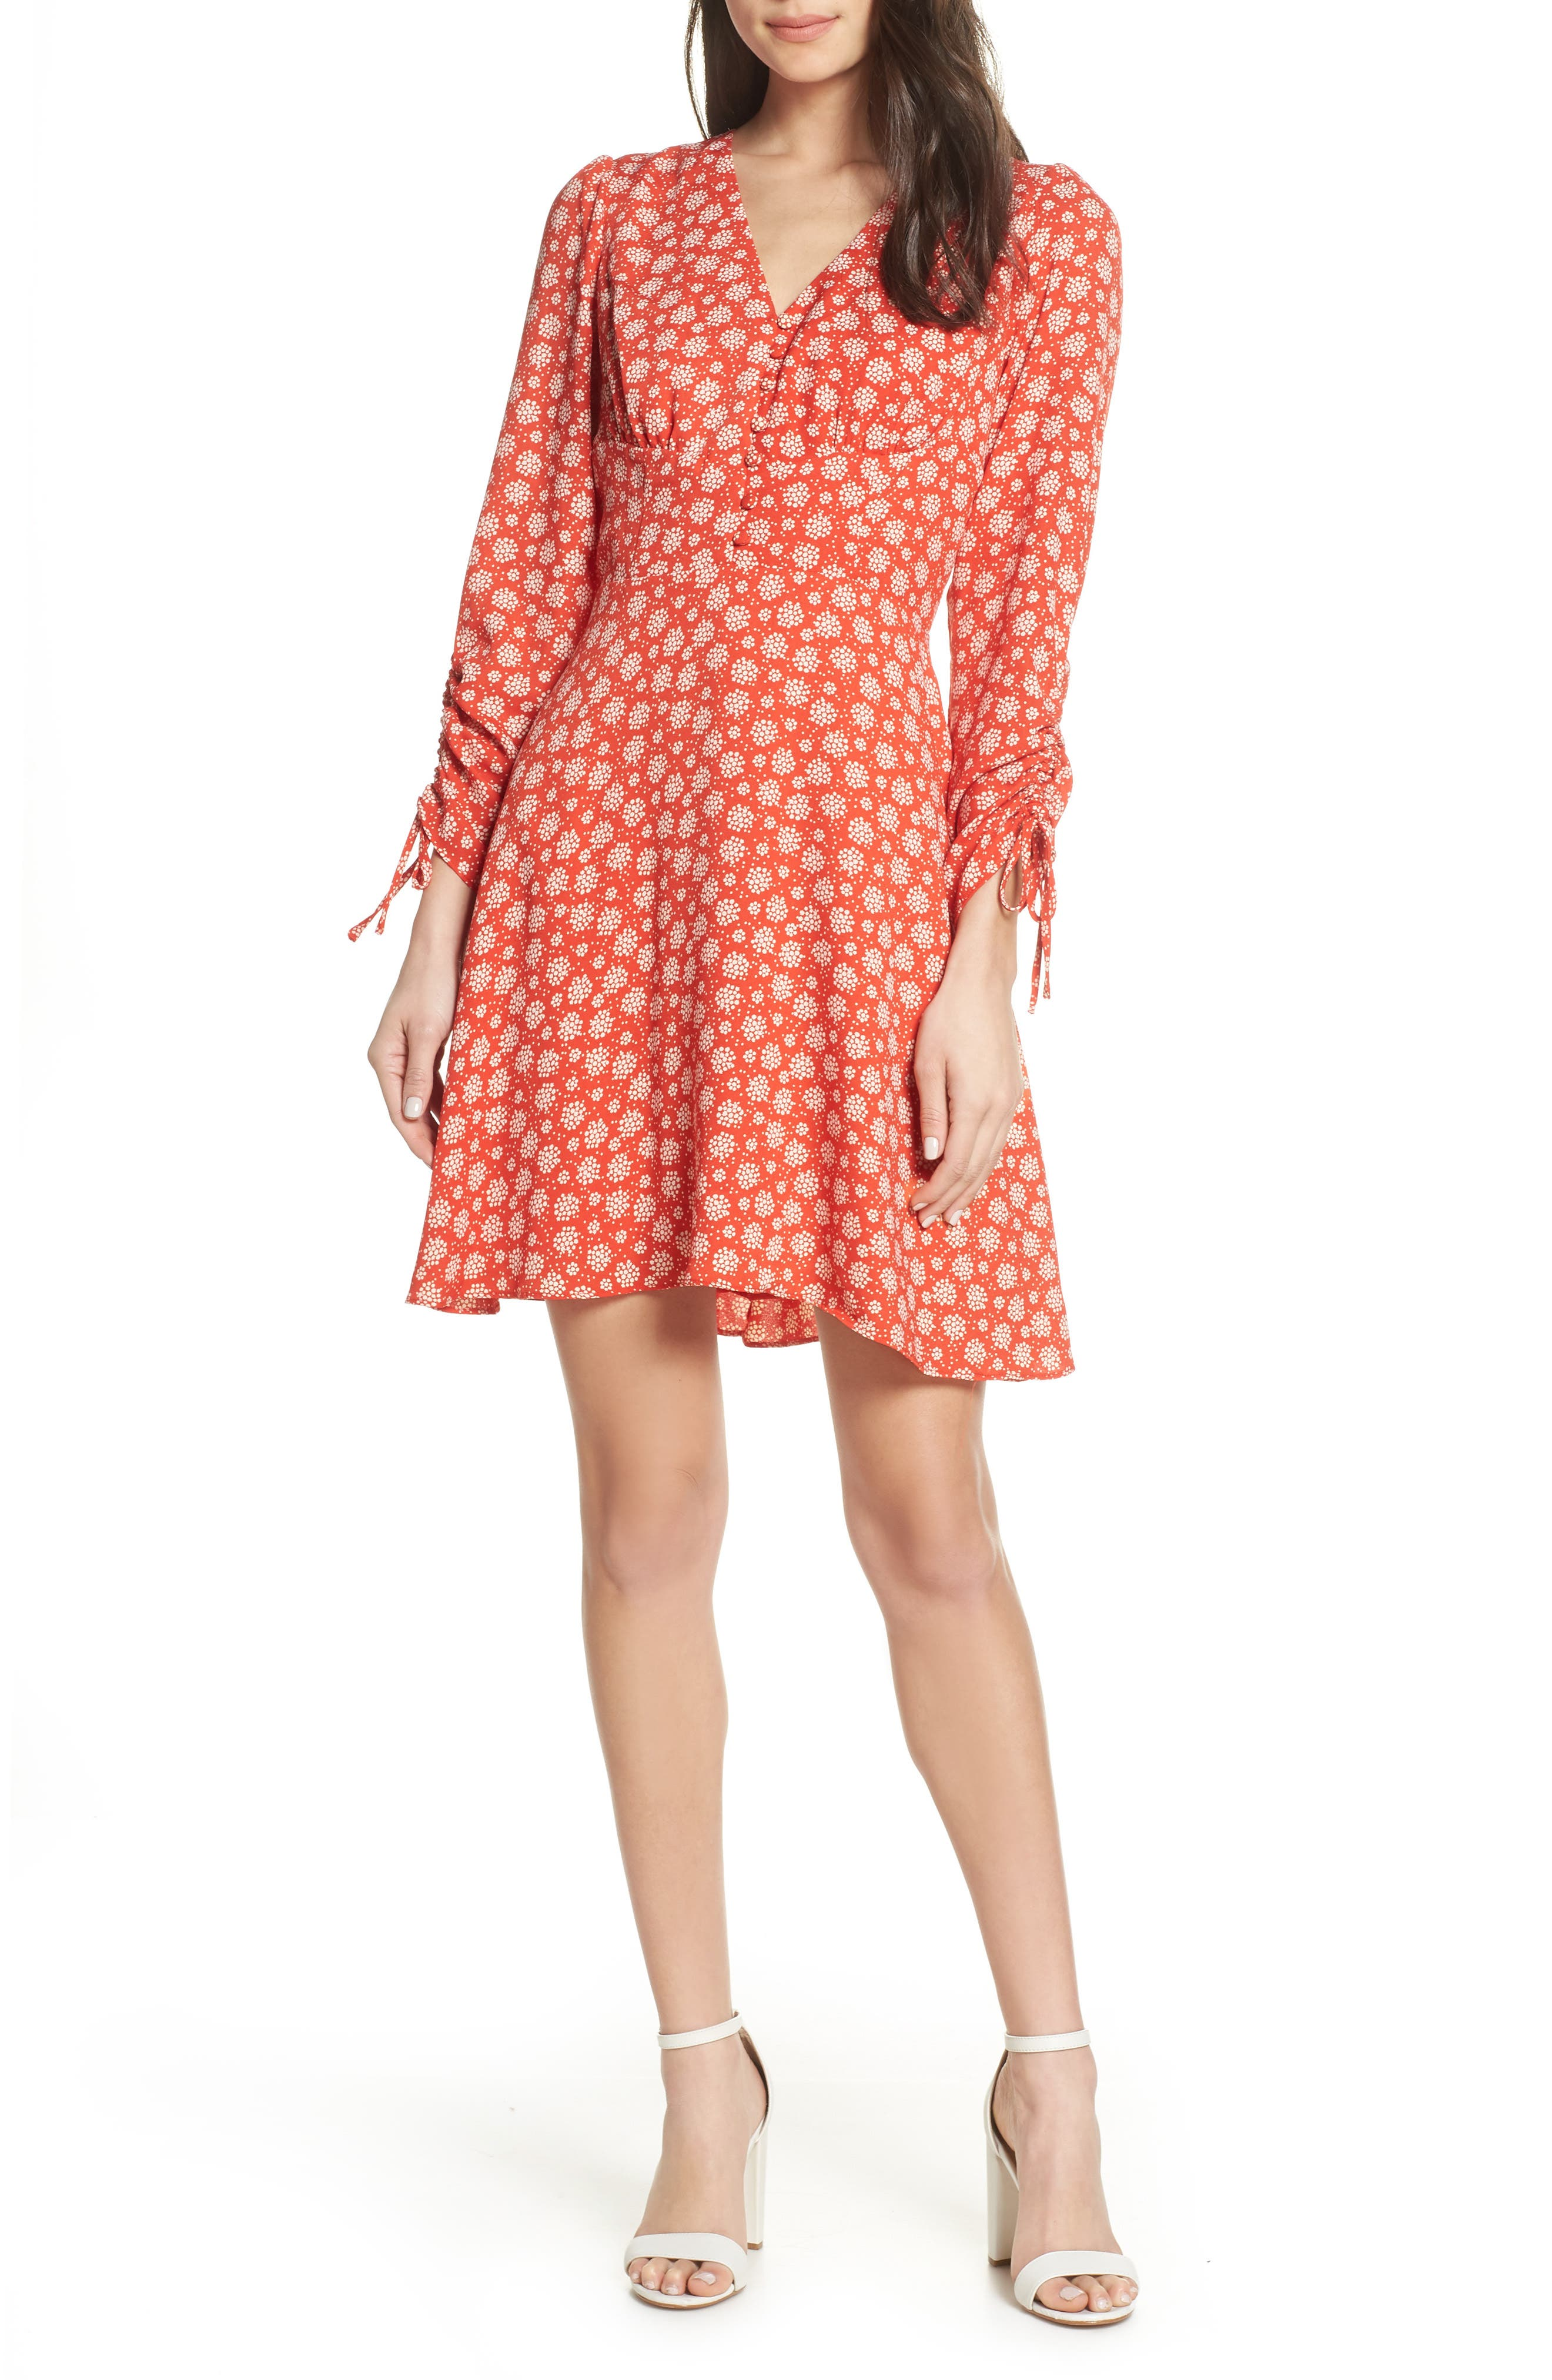 19 COOPER, Ruched Sleeve Fit & Flare Dress, Main thumbnail 1, color, 610